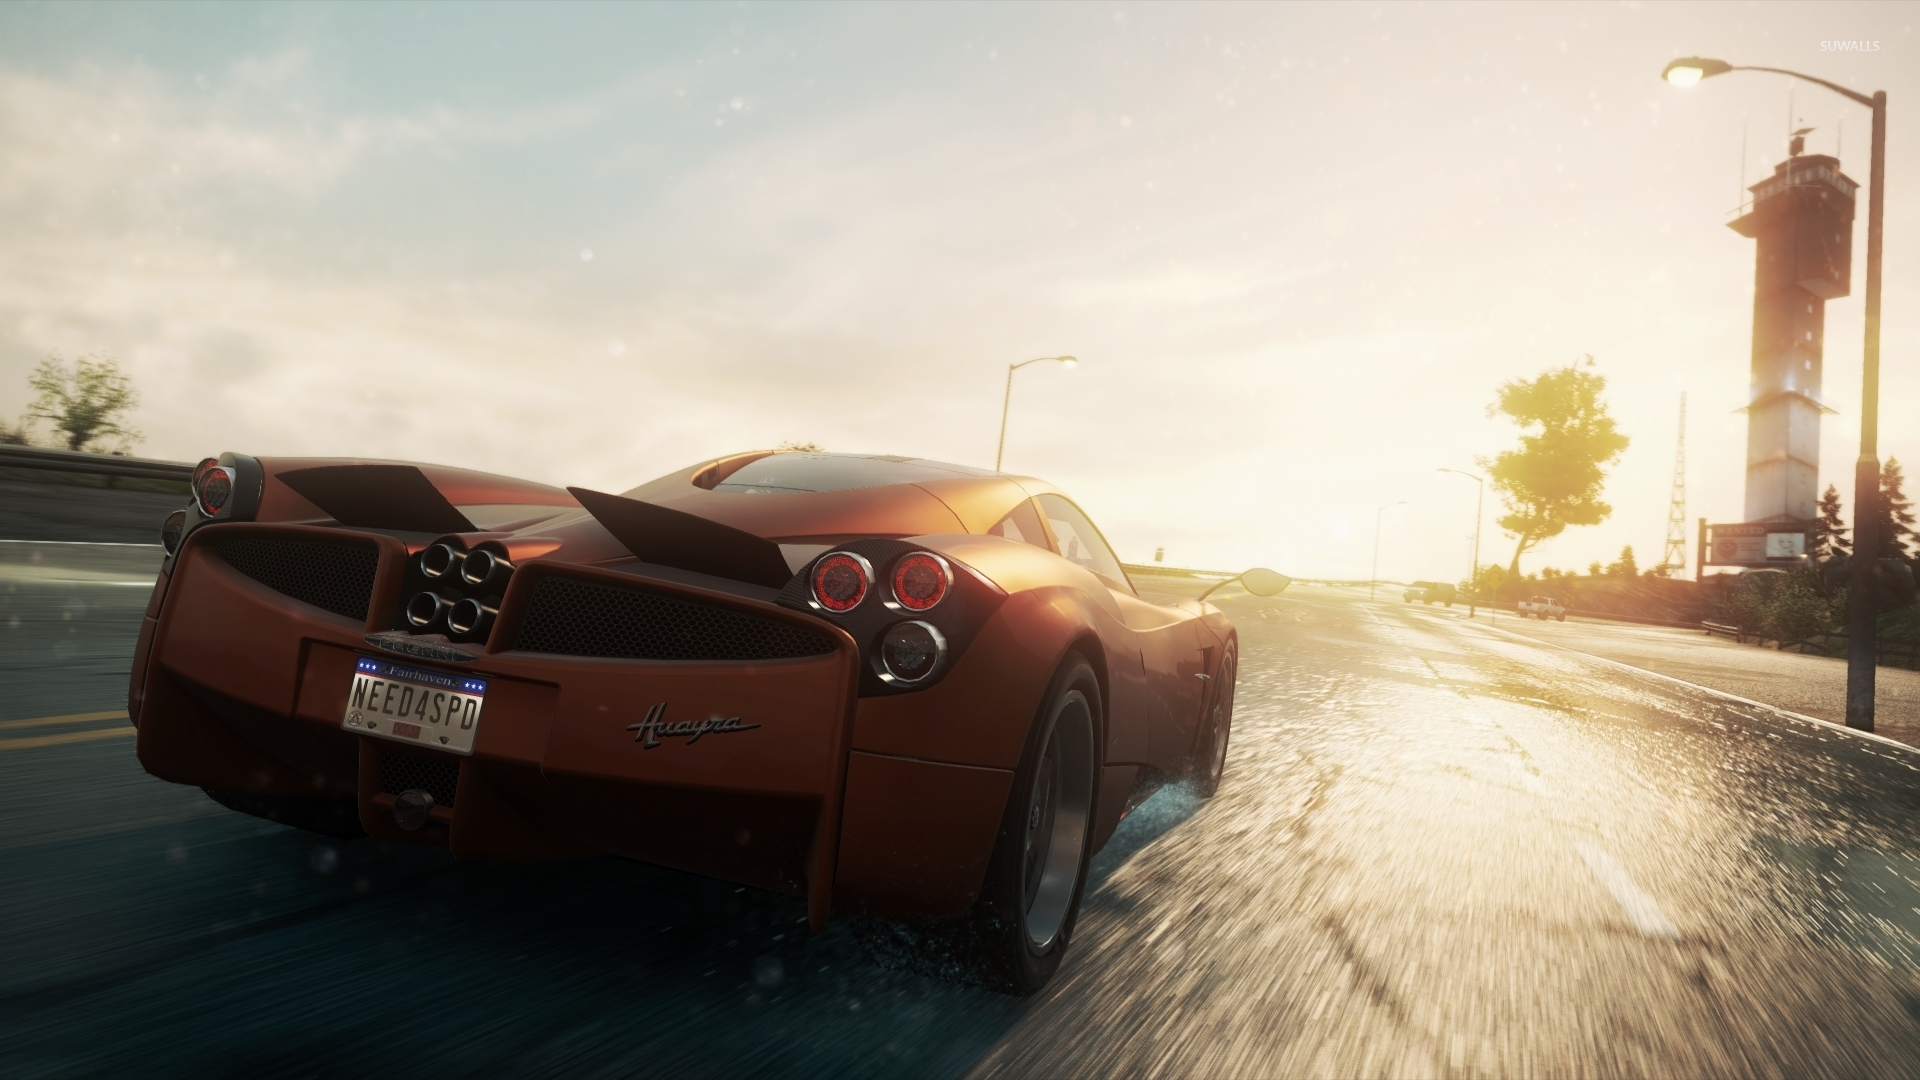 ... - Need for Speed: Most Wanted wallpaper - Game wallpapers - #30823